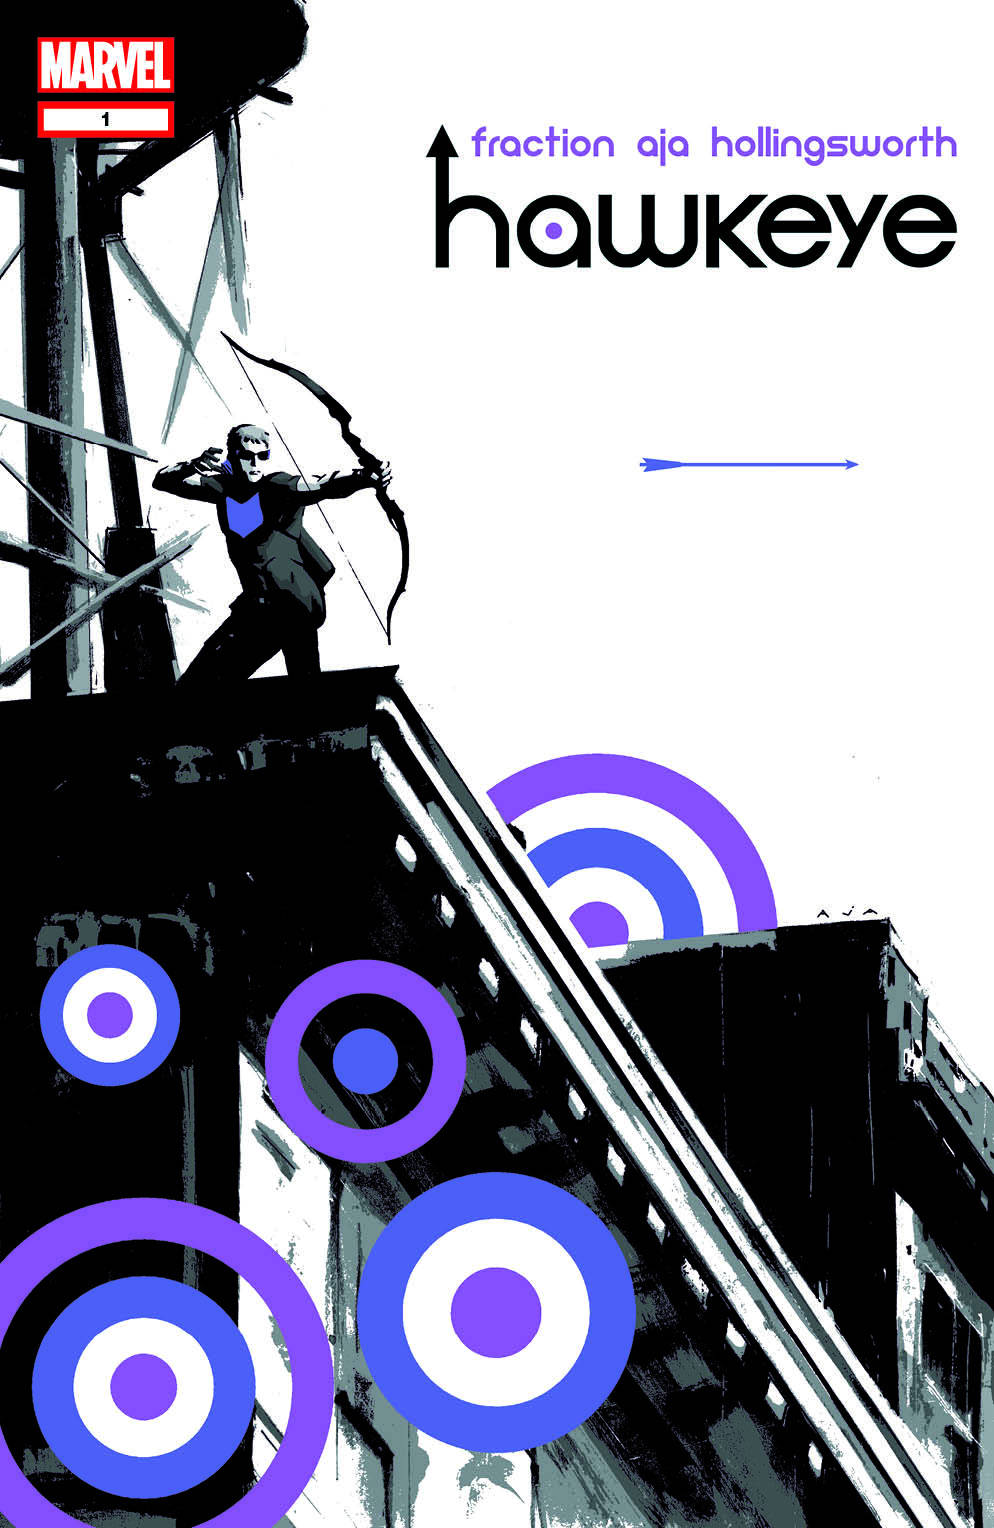 Marvel announced a new Hawkeye ongoing series, written by Matt Fraction and David Aja (a team that worked so well on the excellent Immortal Iron Fist). The covers are also by Aja, and they are such beautiful pieces that I'm going to post the first three in succession. This is the cover to the first issue.